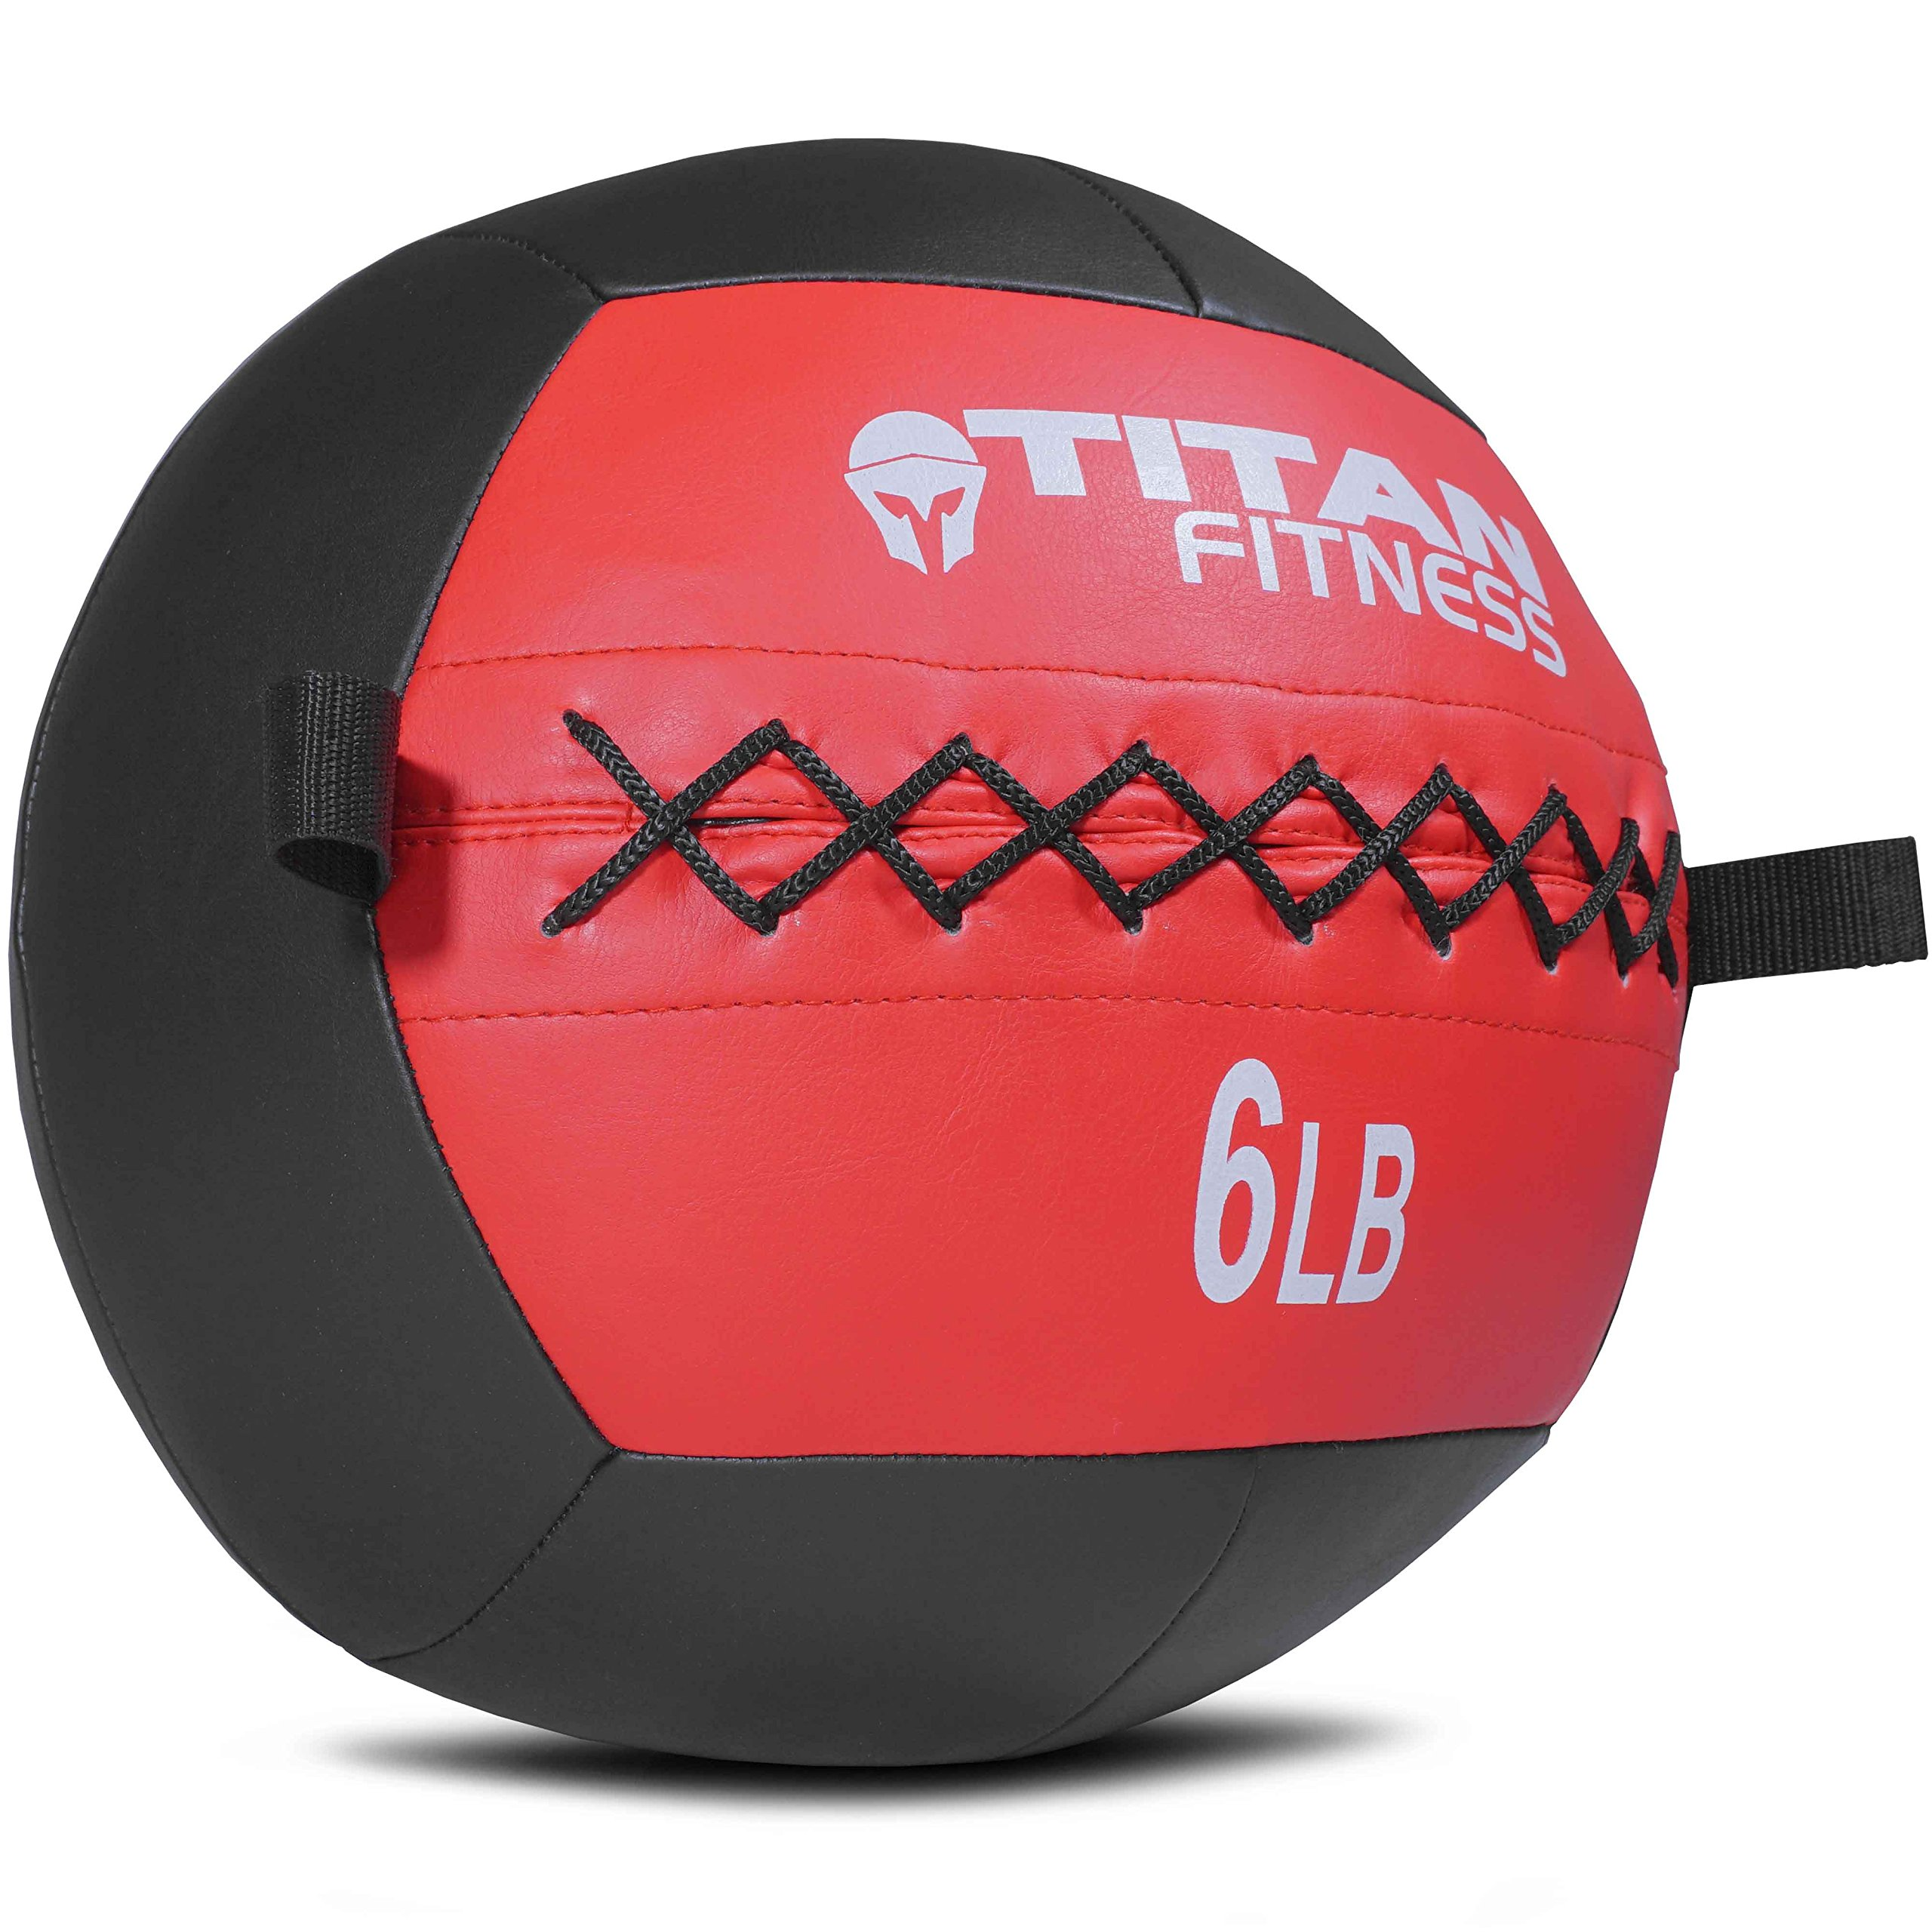 Titan Soft Wall Ball Medicine 6 lb Core Workout Cardio Muscle Exercises Fitness